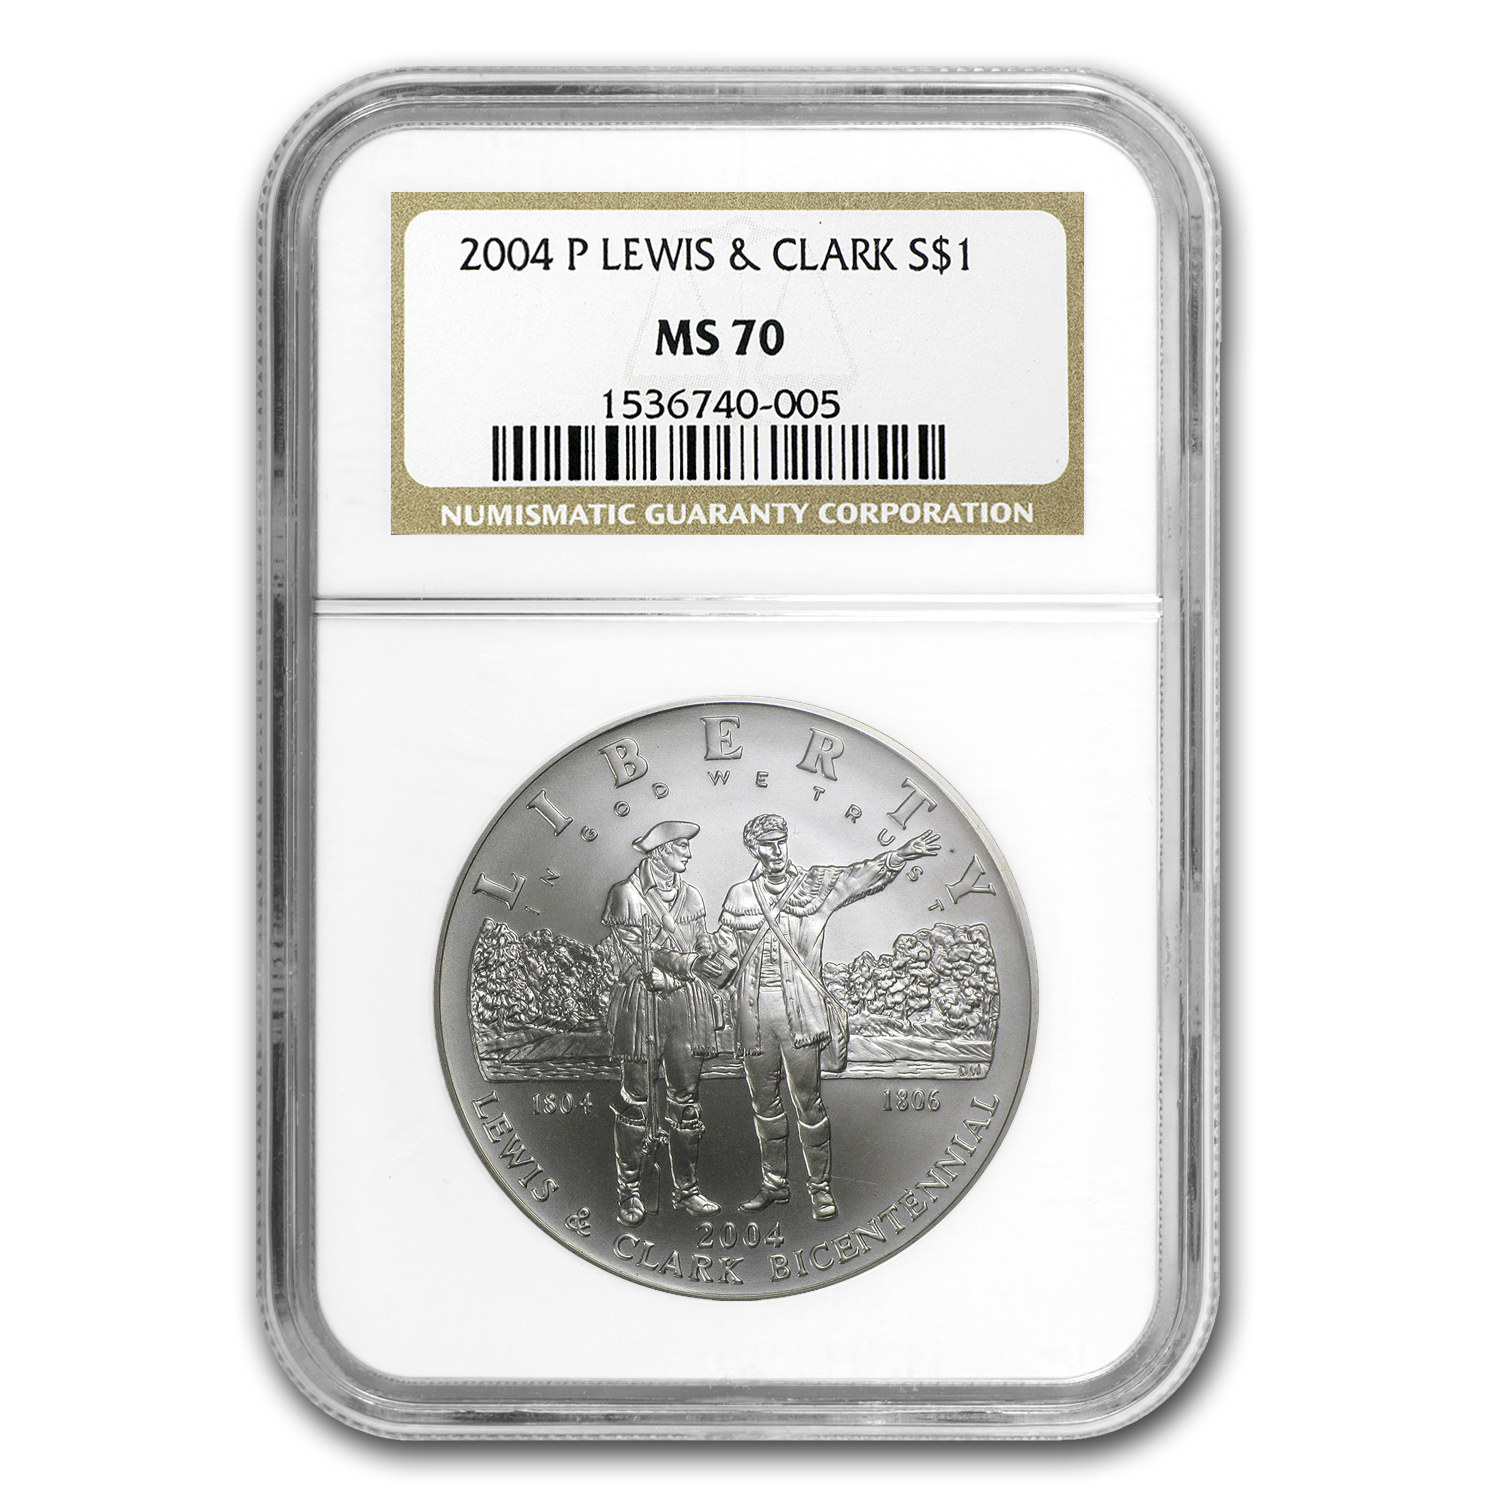 2004-P Lewis&Clark Bicentennial $1 Silver Commemorative MS-70 NGC